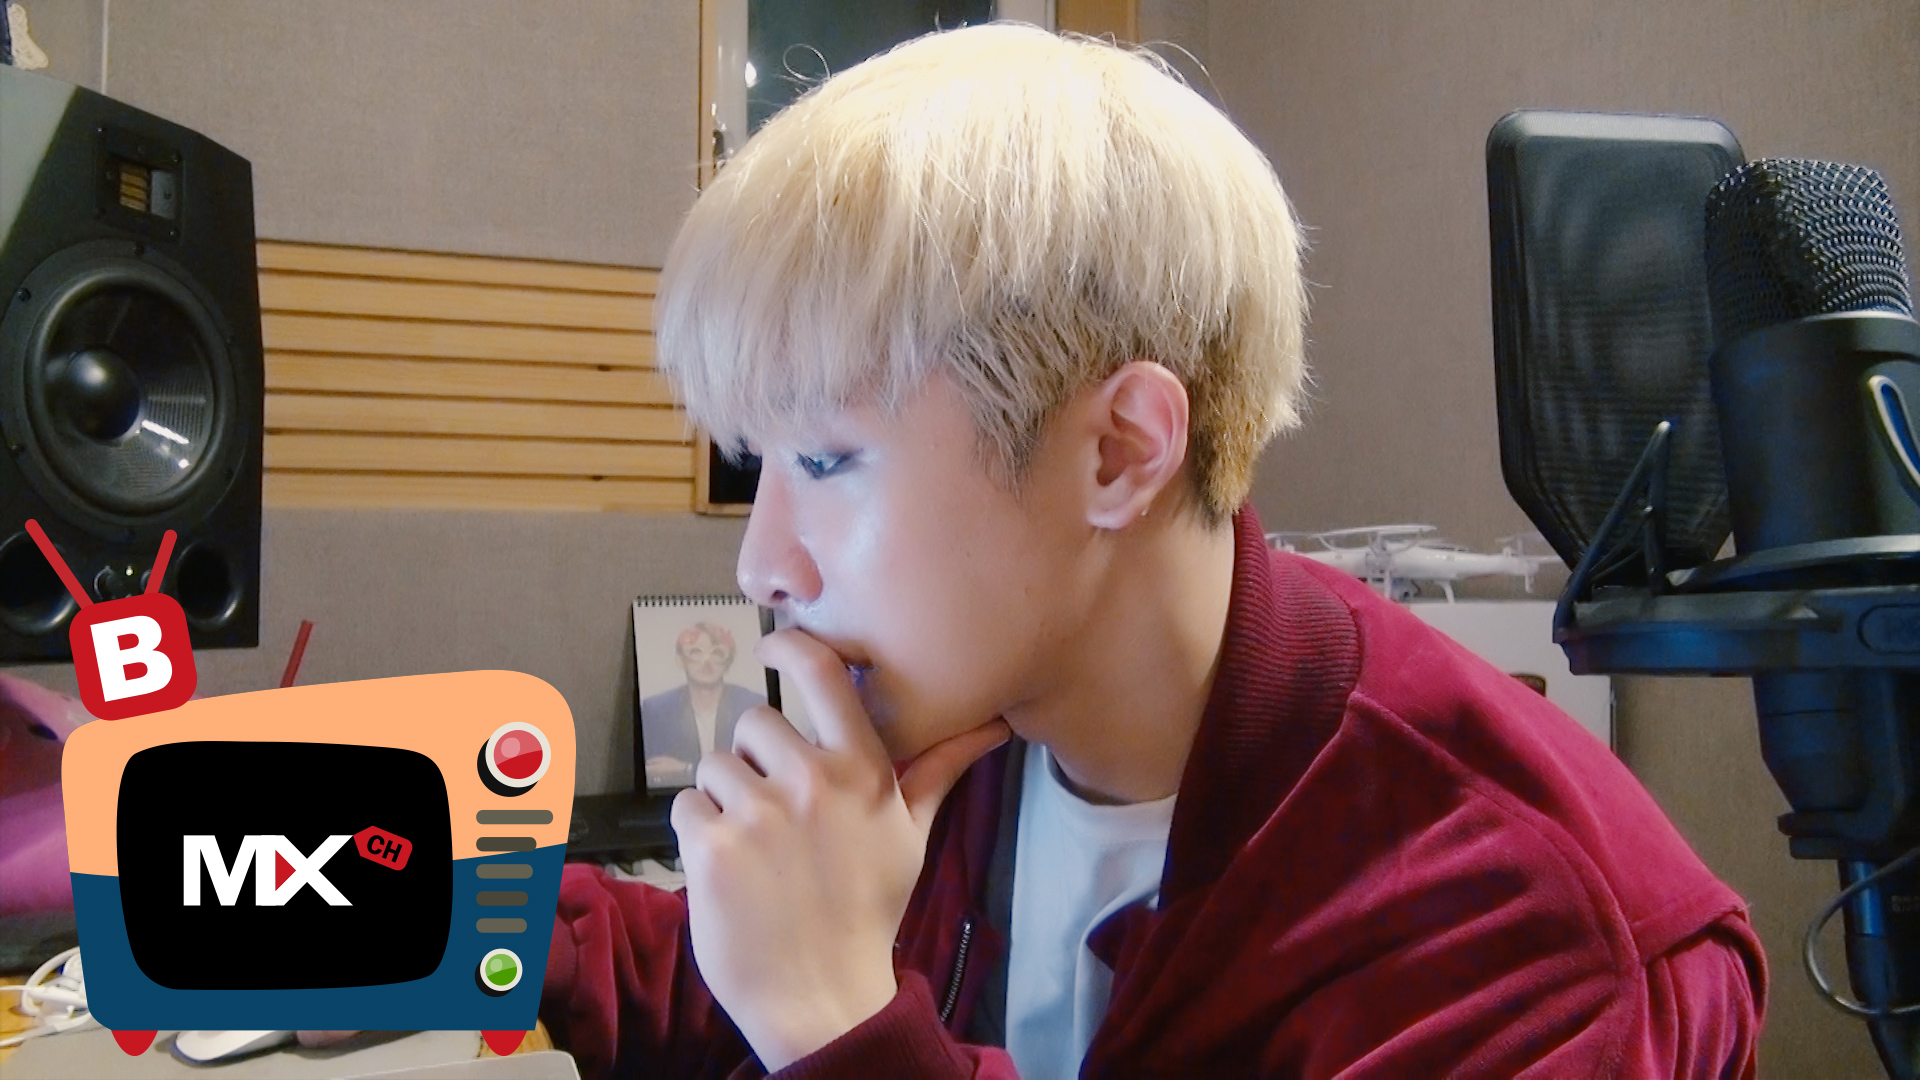 [몬채널][B] EP.54 '넌 어때(I'll Be There)' 작업일기 (by WH)